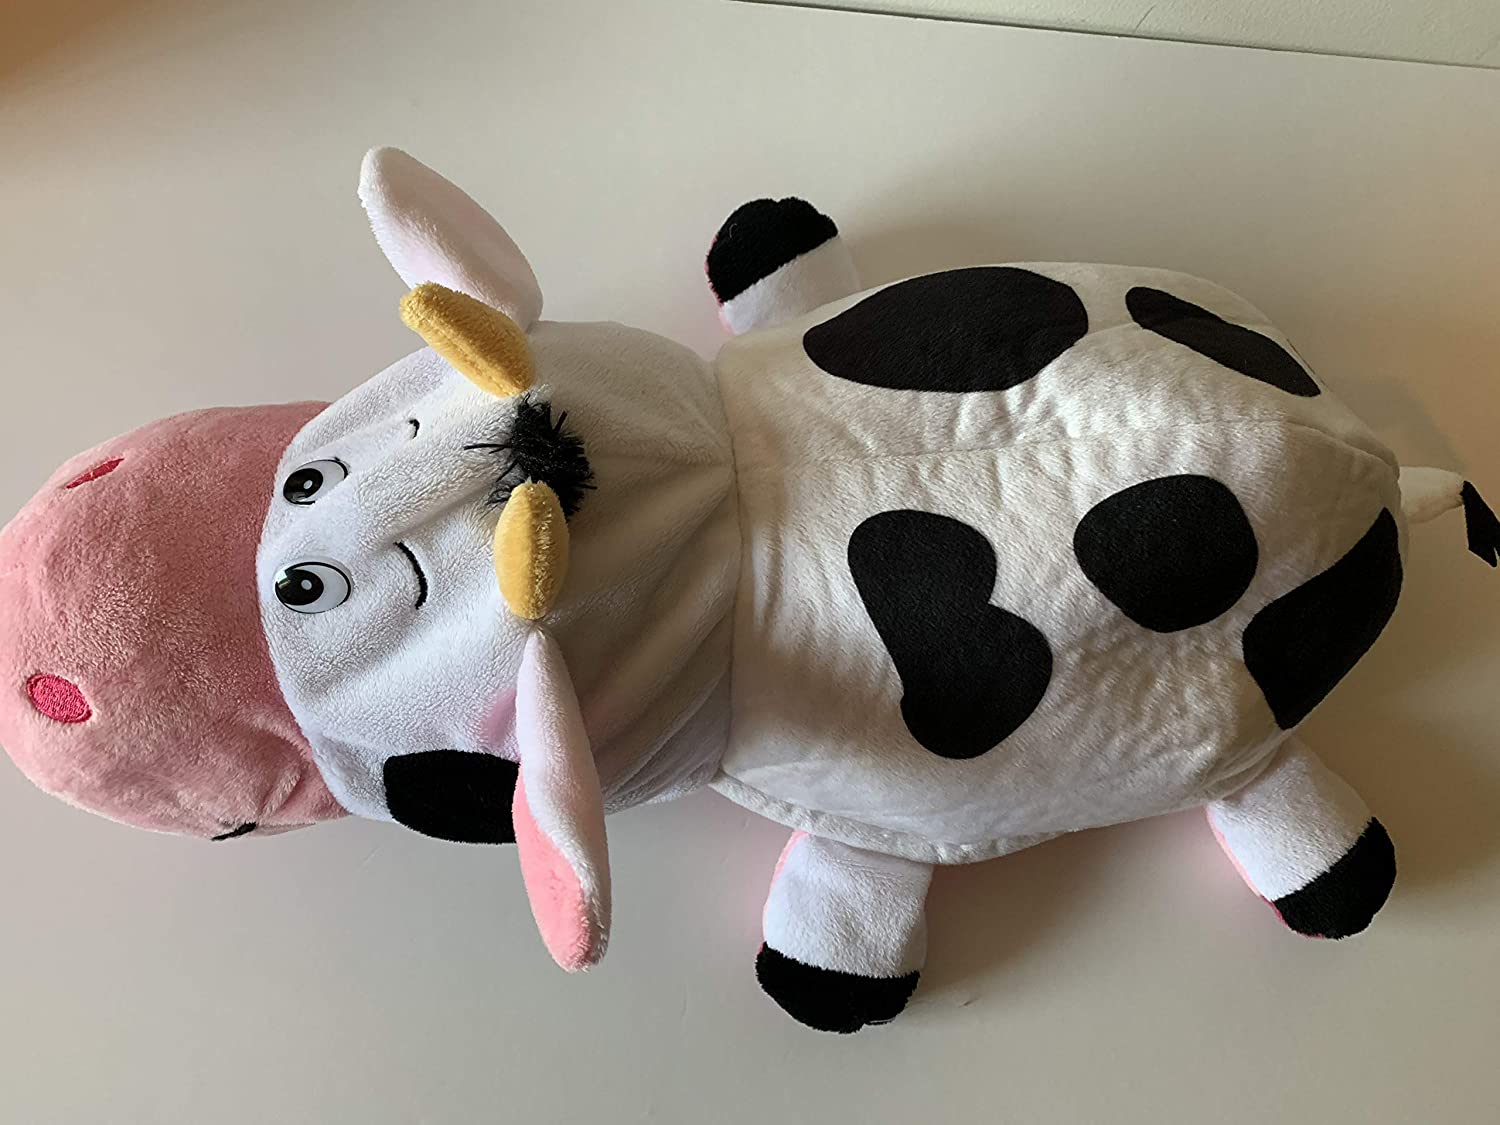 weighted dragon//unicorn or pig//cow with 4 lbs Weighted stuffed animal